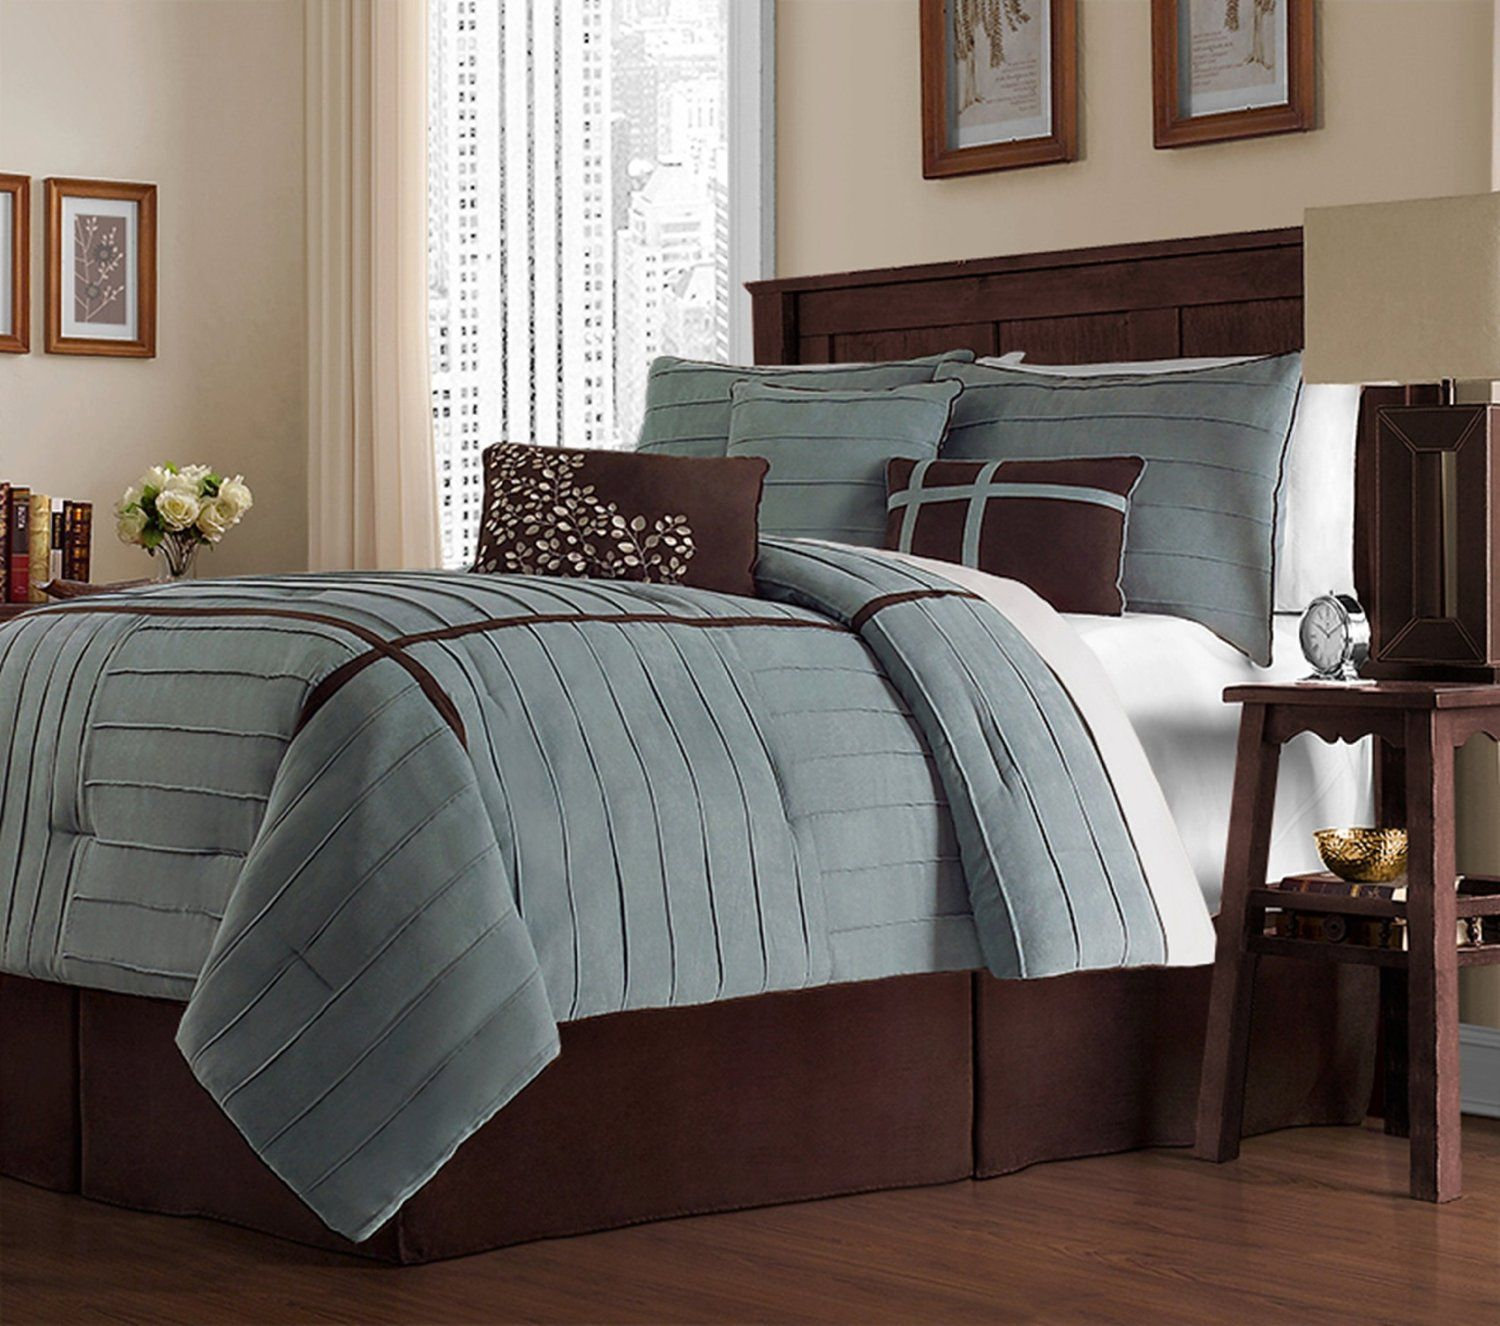 Exceptional Amazon.com: Victoria Classics Ellington 7 Piece Comforter Set, King, Blue